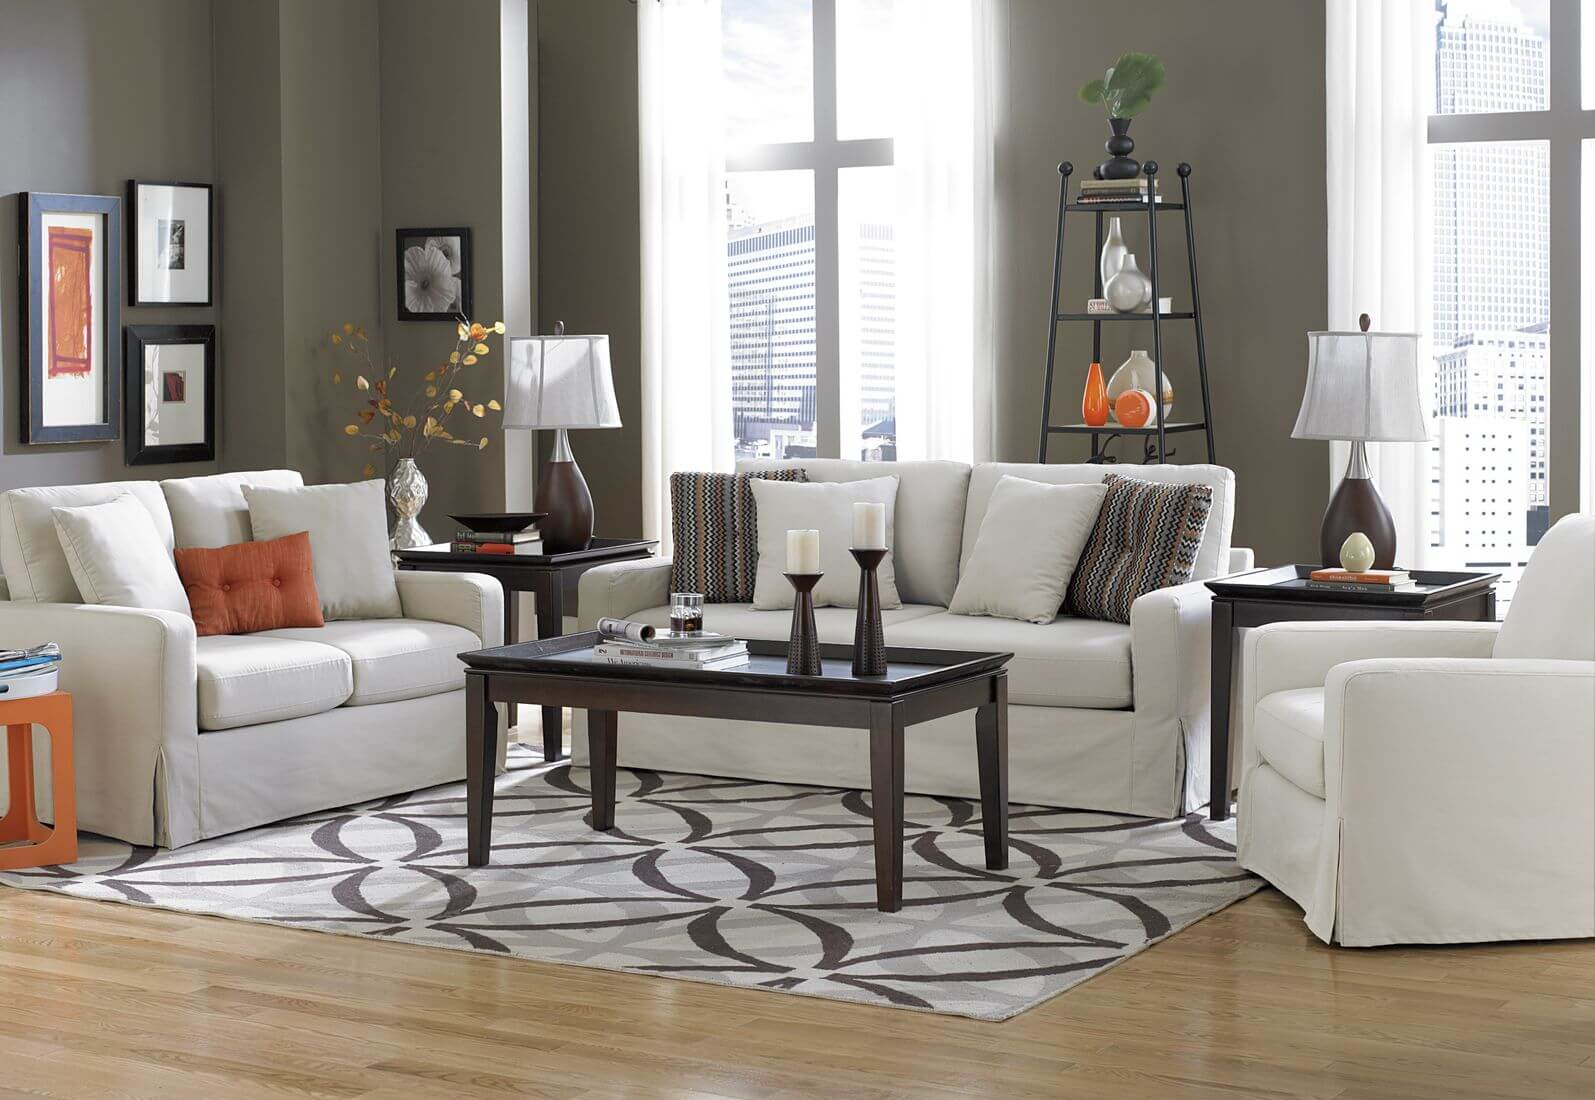 This modern living room adds a bright pop of orange as an accent color. The